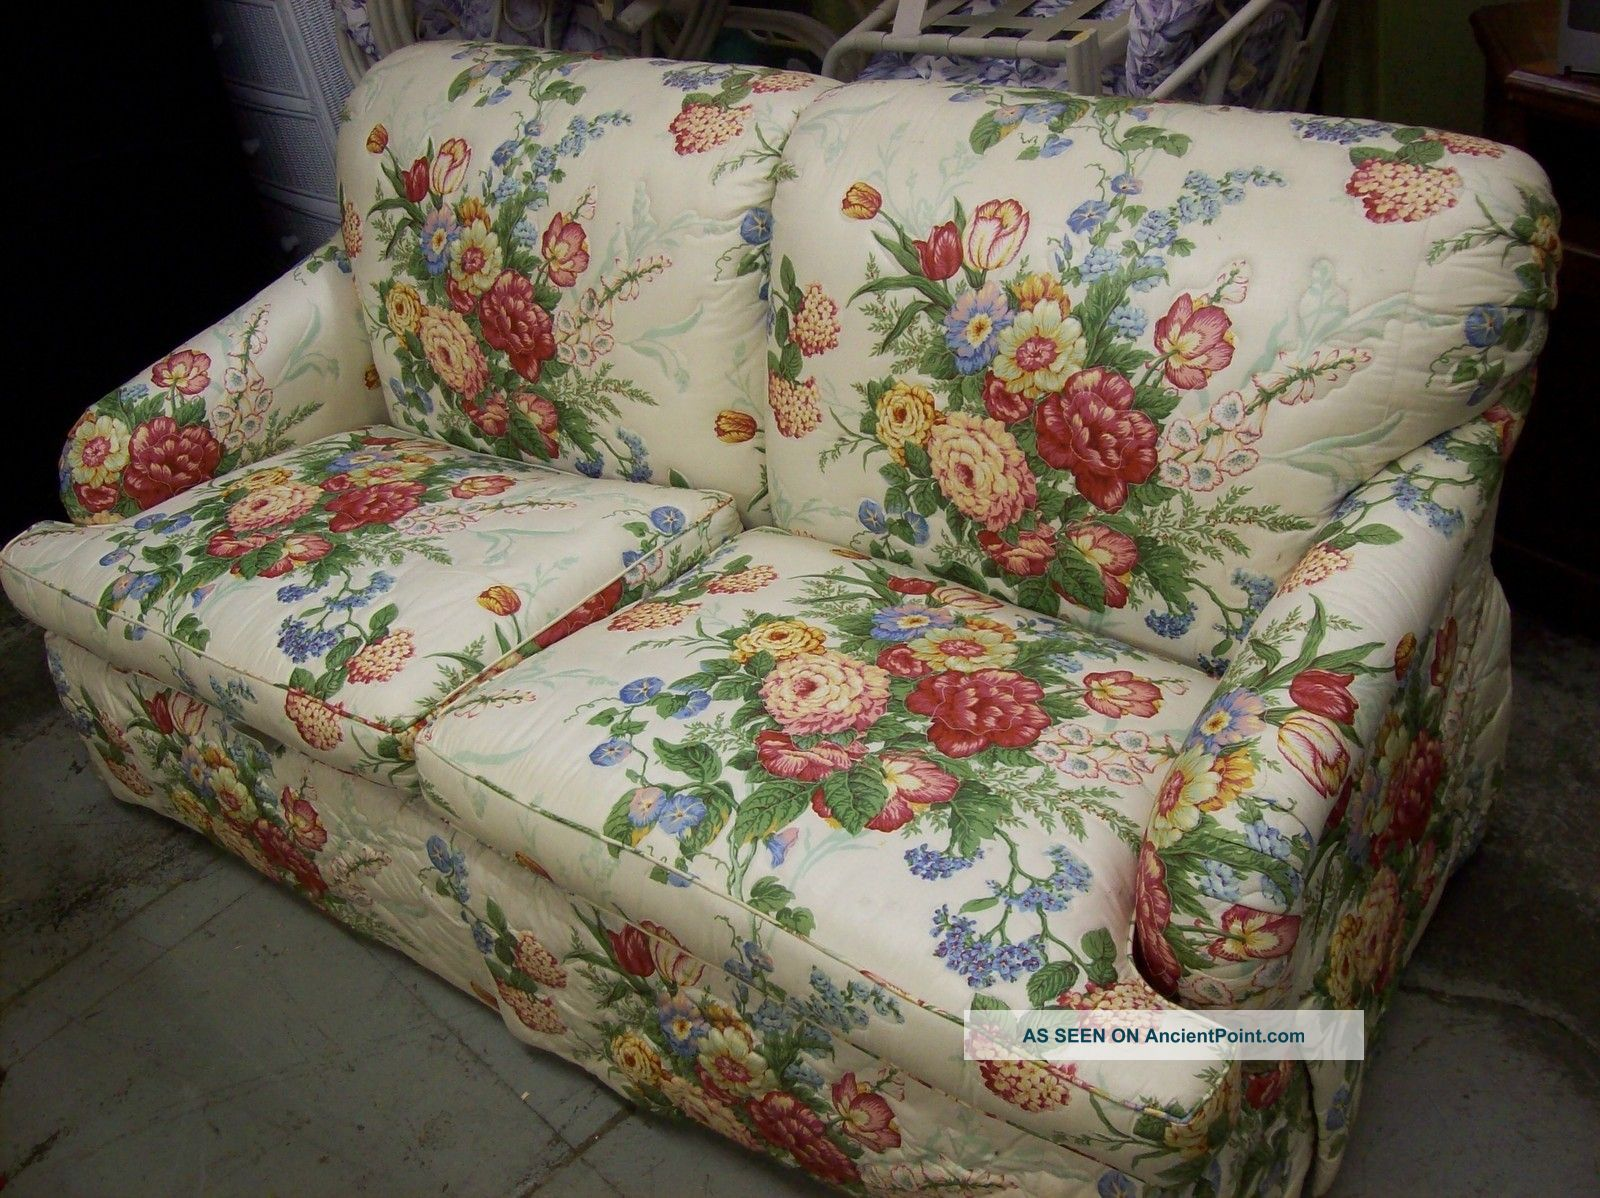 Floral Sofa Amusing With Floral Sofas and Loveseats Images